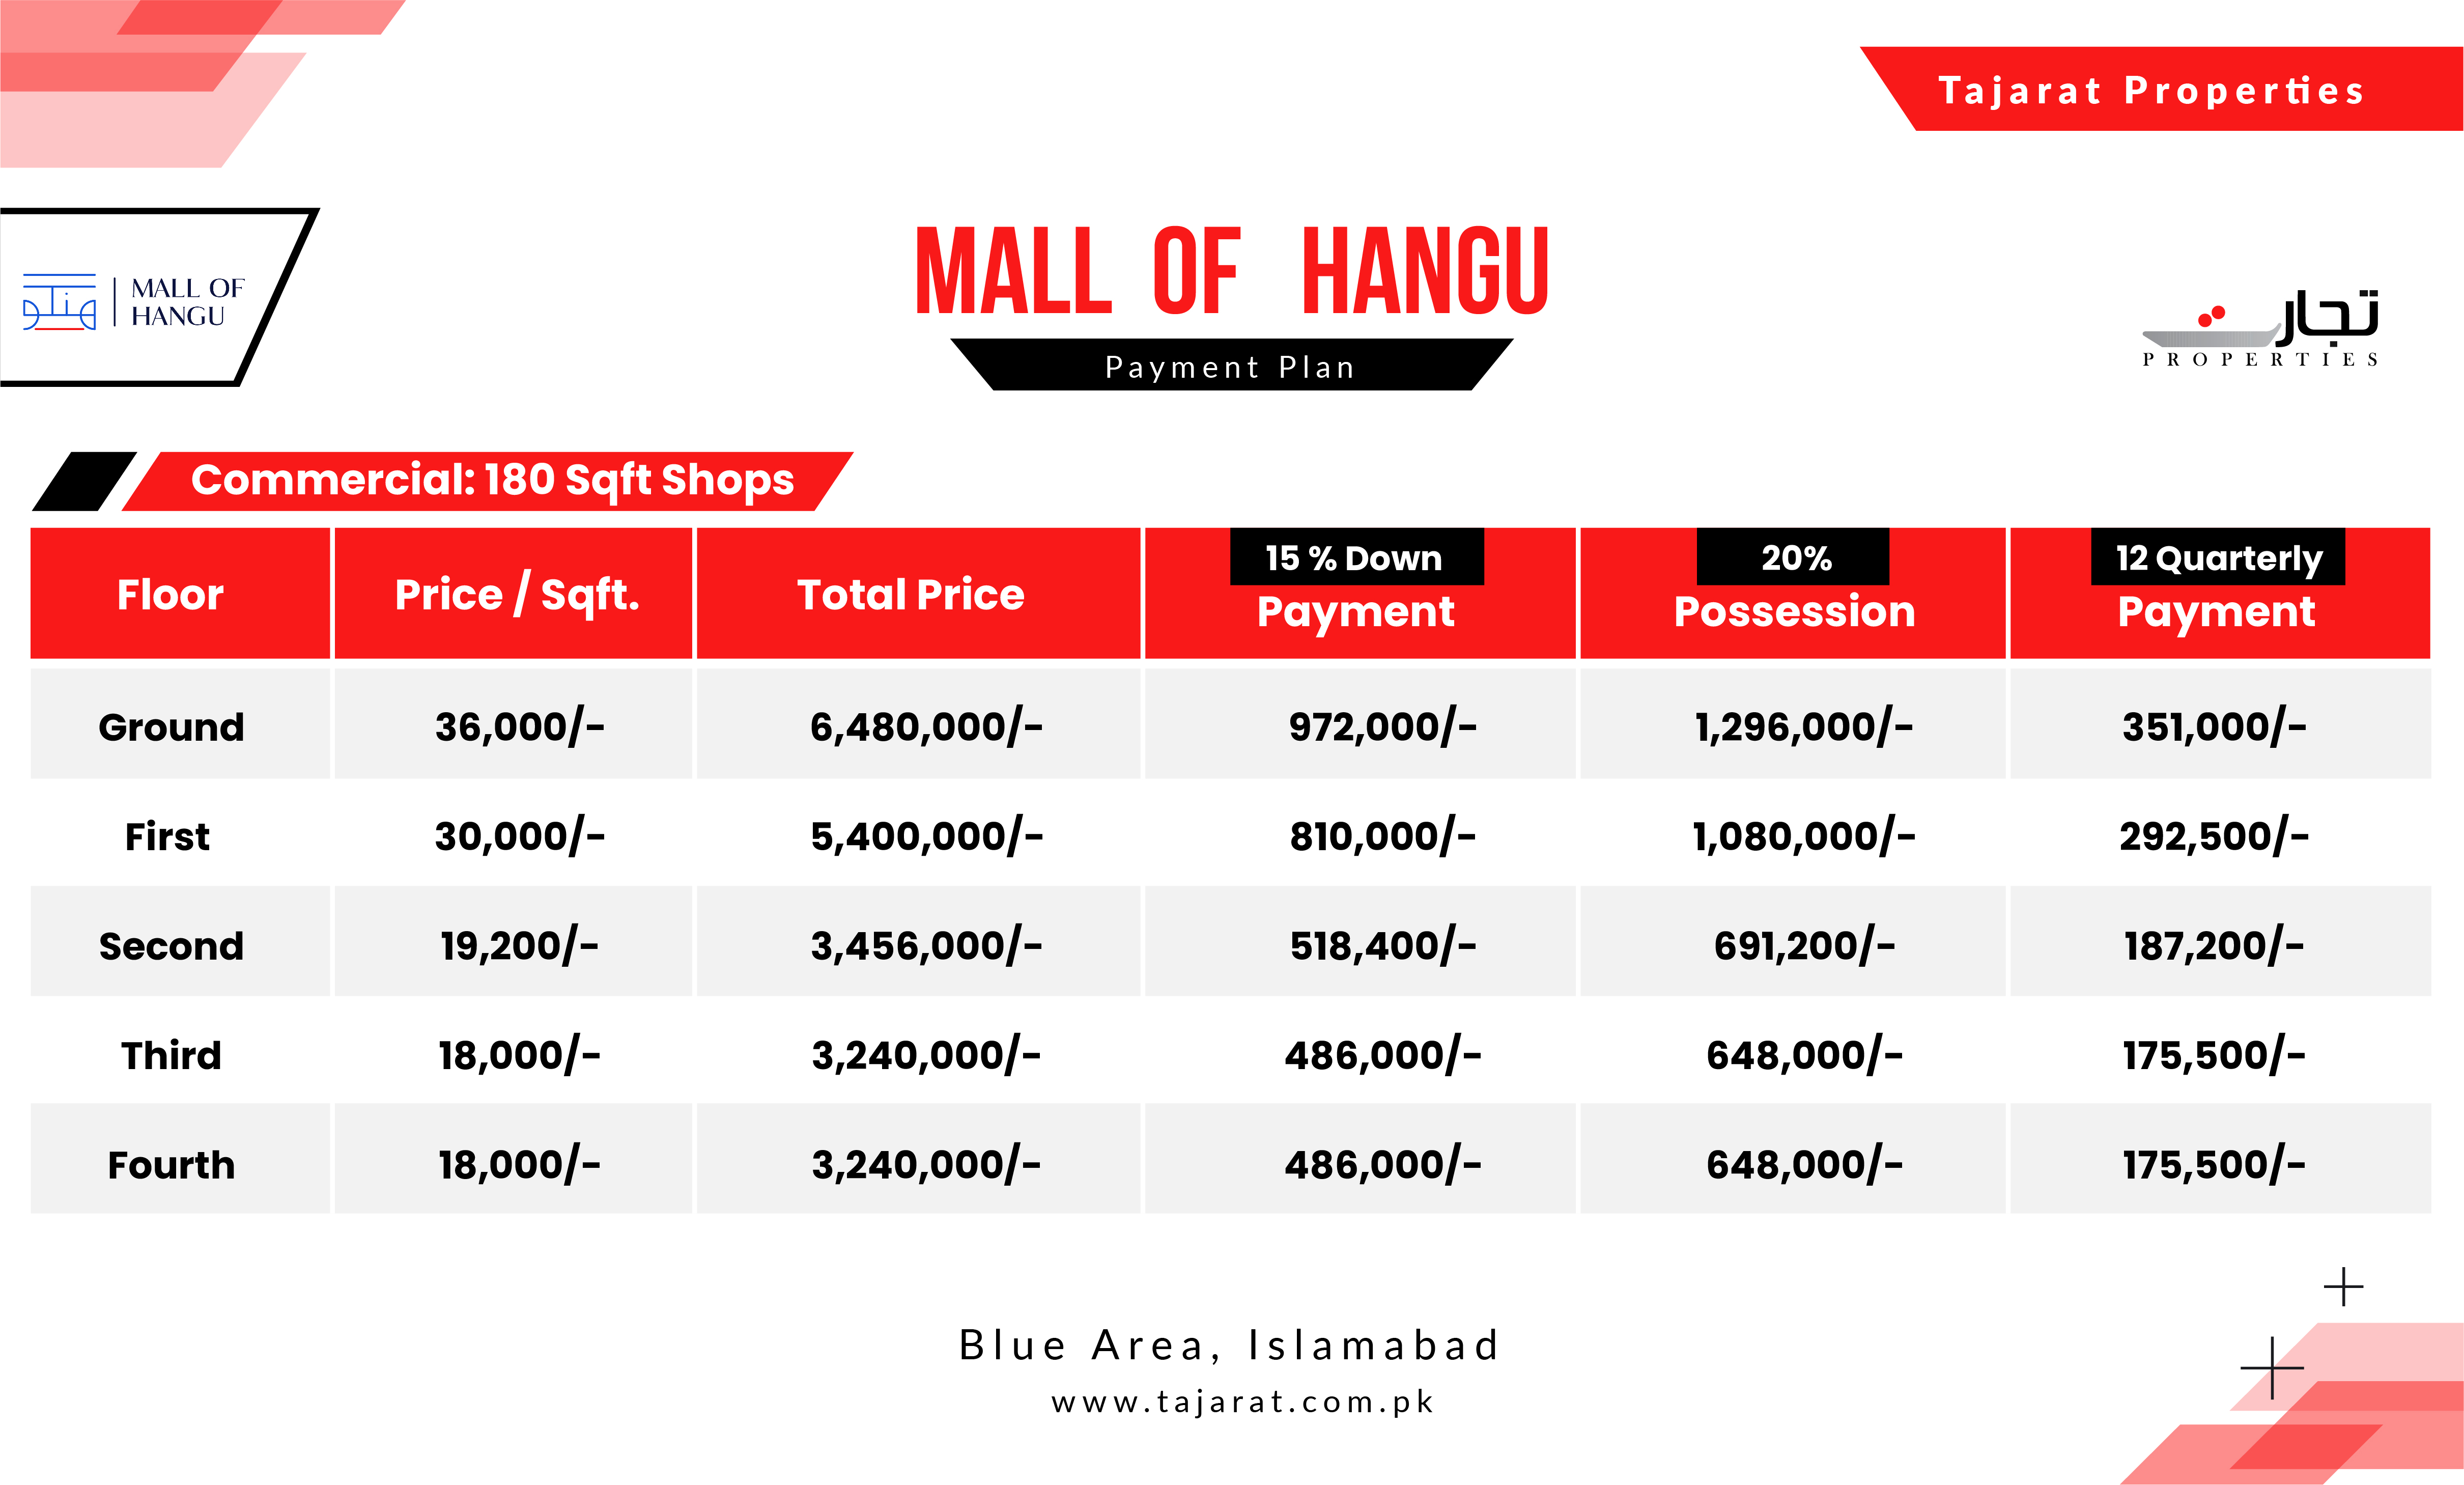 Mall of Hangu Commercial Shops Payment Plan